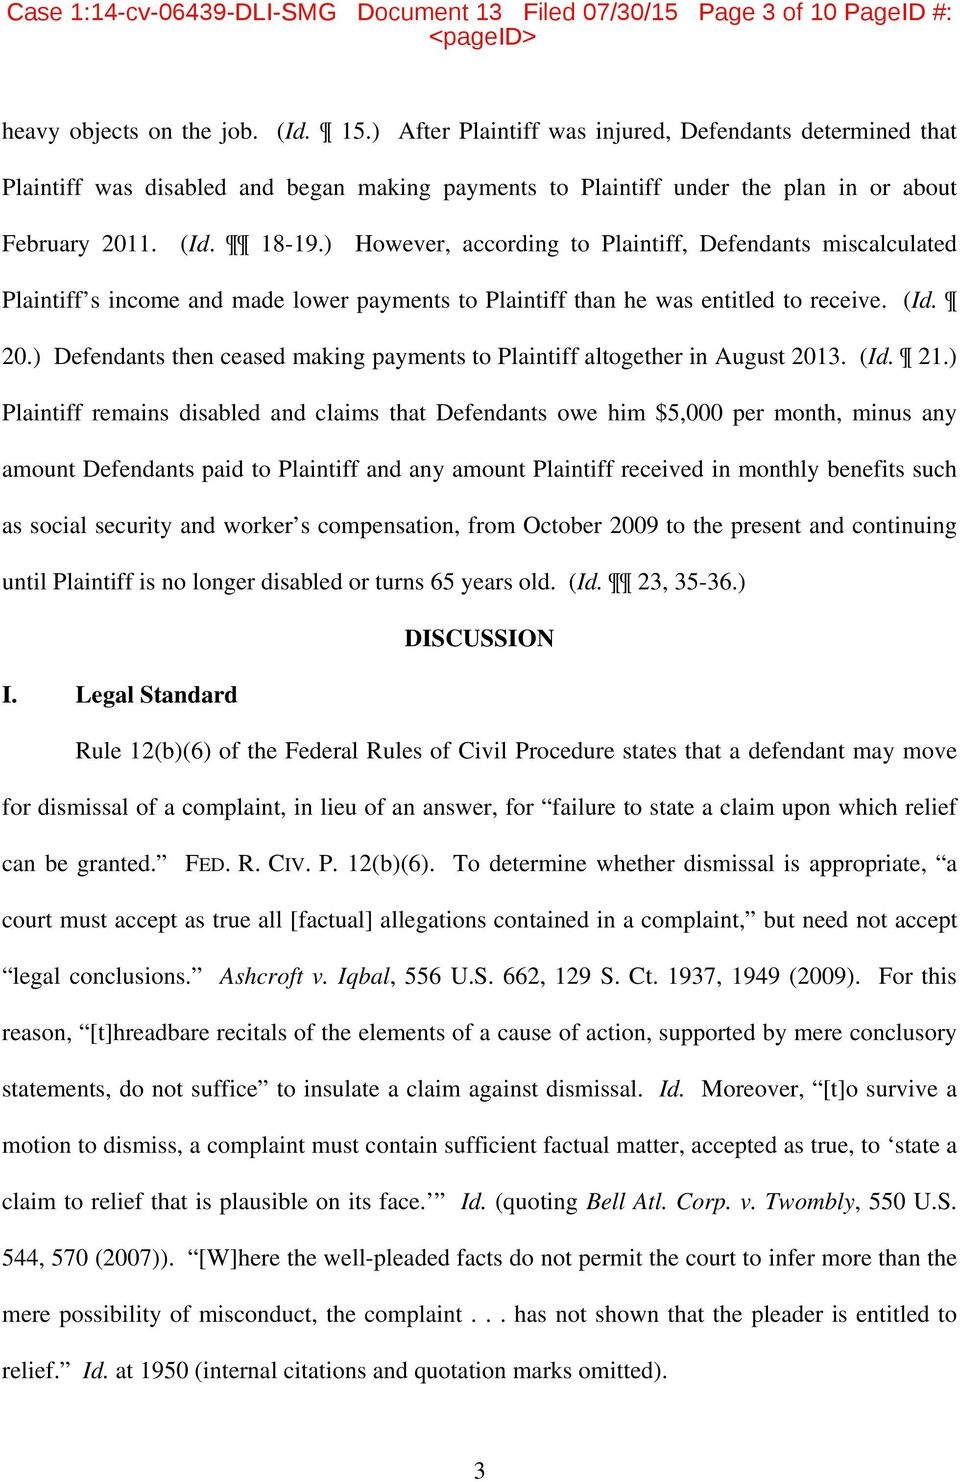 ) However, according to Plaintiff, Defendants miscalculated Plaintiff s income and made lower payments to Plaintiff than he was entitled to receive. (Id. 20.